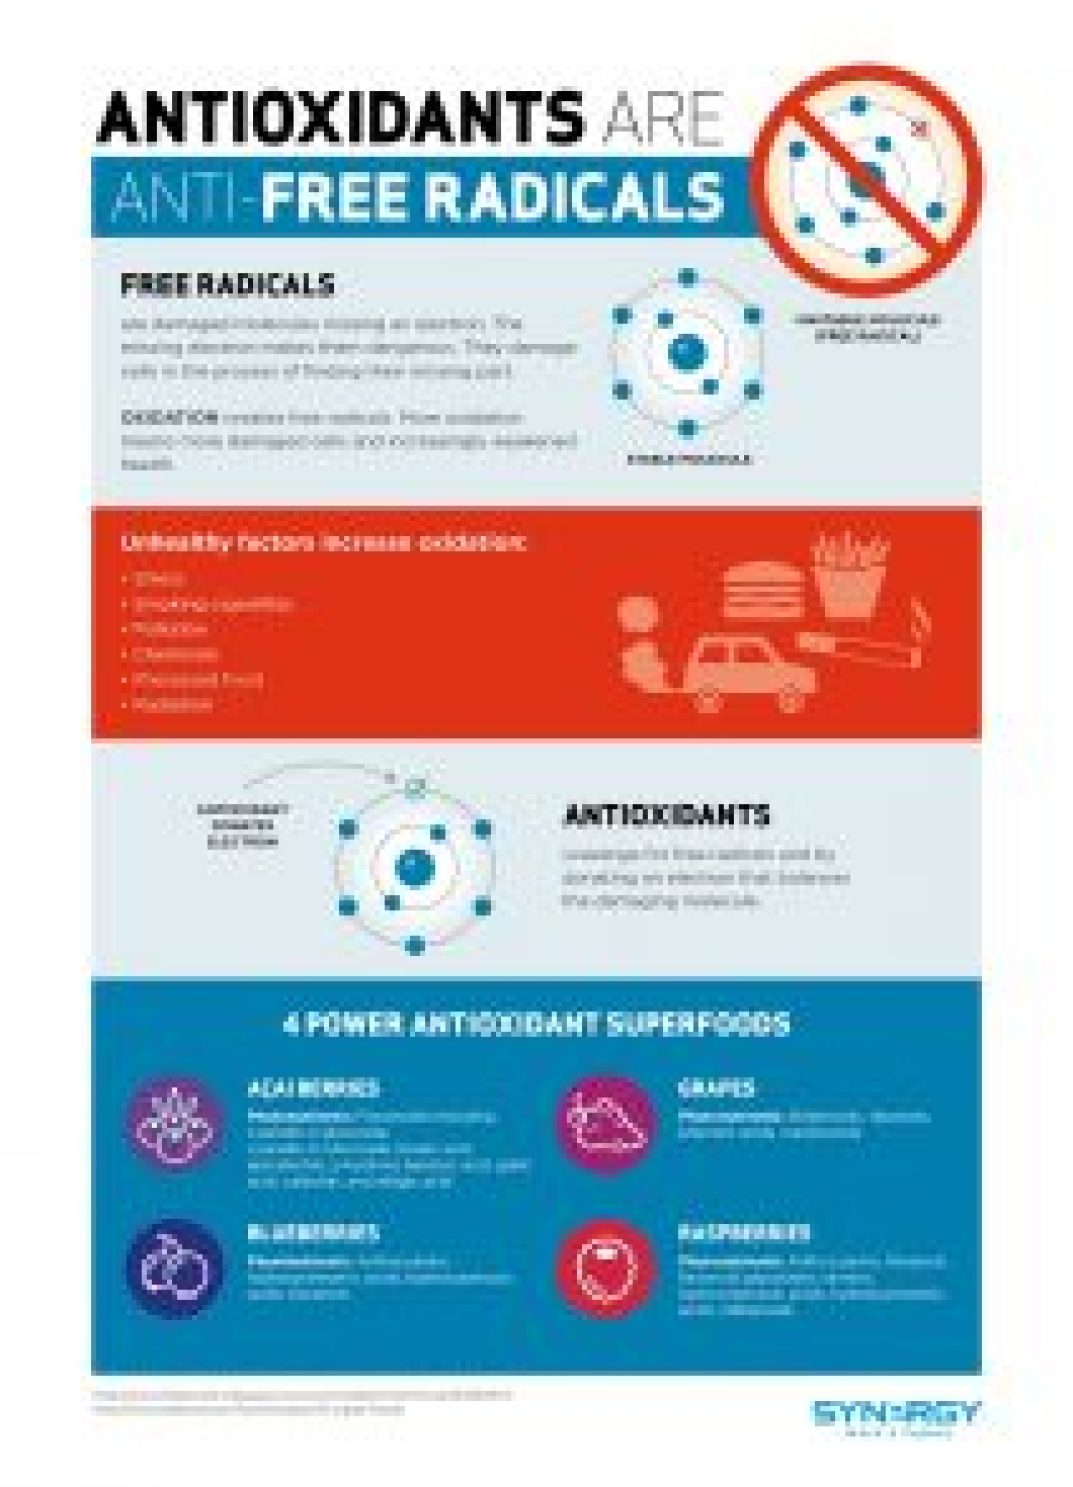 antioxidants-infographic-en